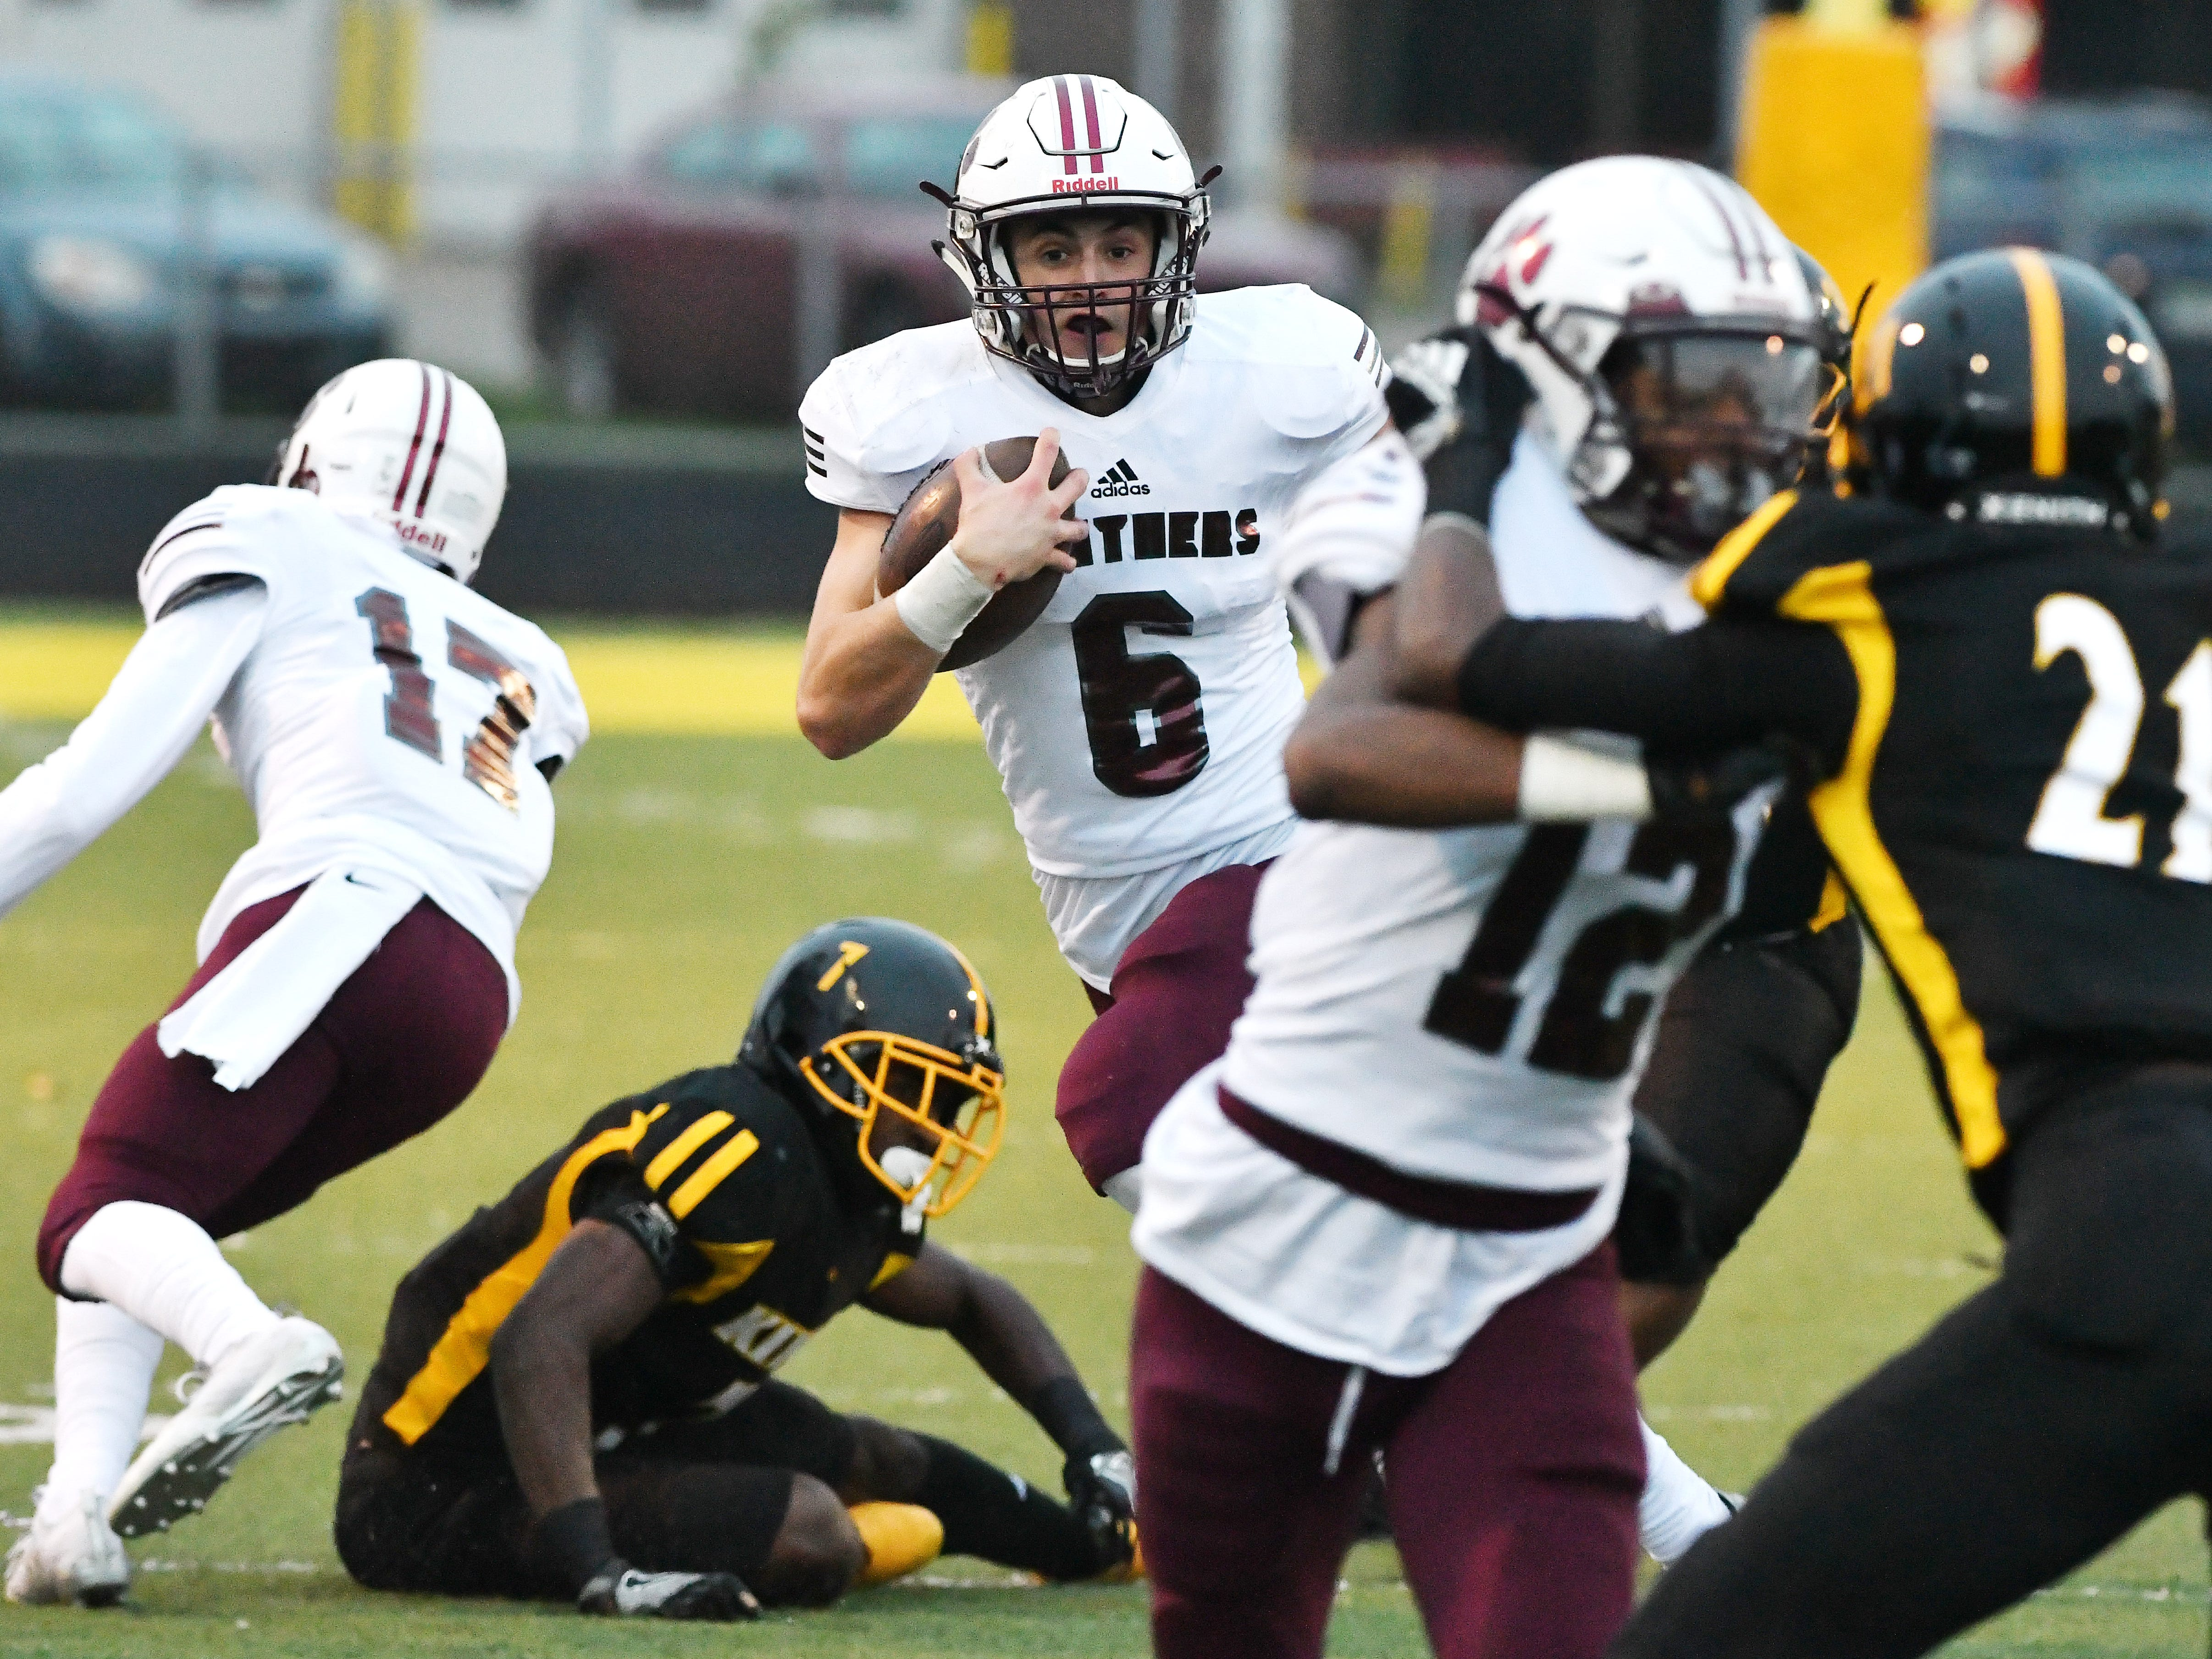 River Rouge quarterback Emmanuel Ferguson looks for a hole in King's defense in the second quarter.